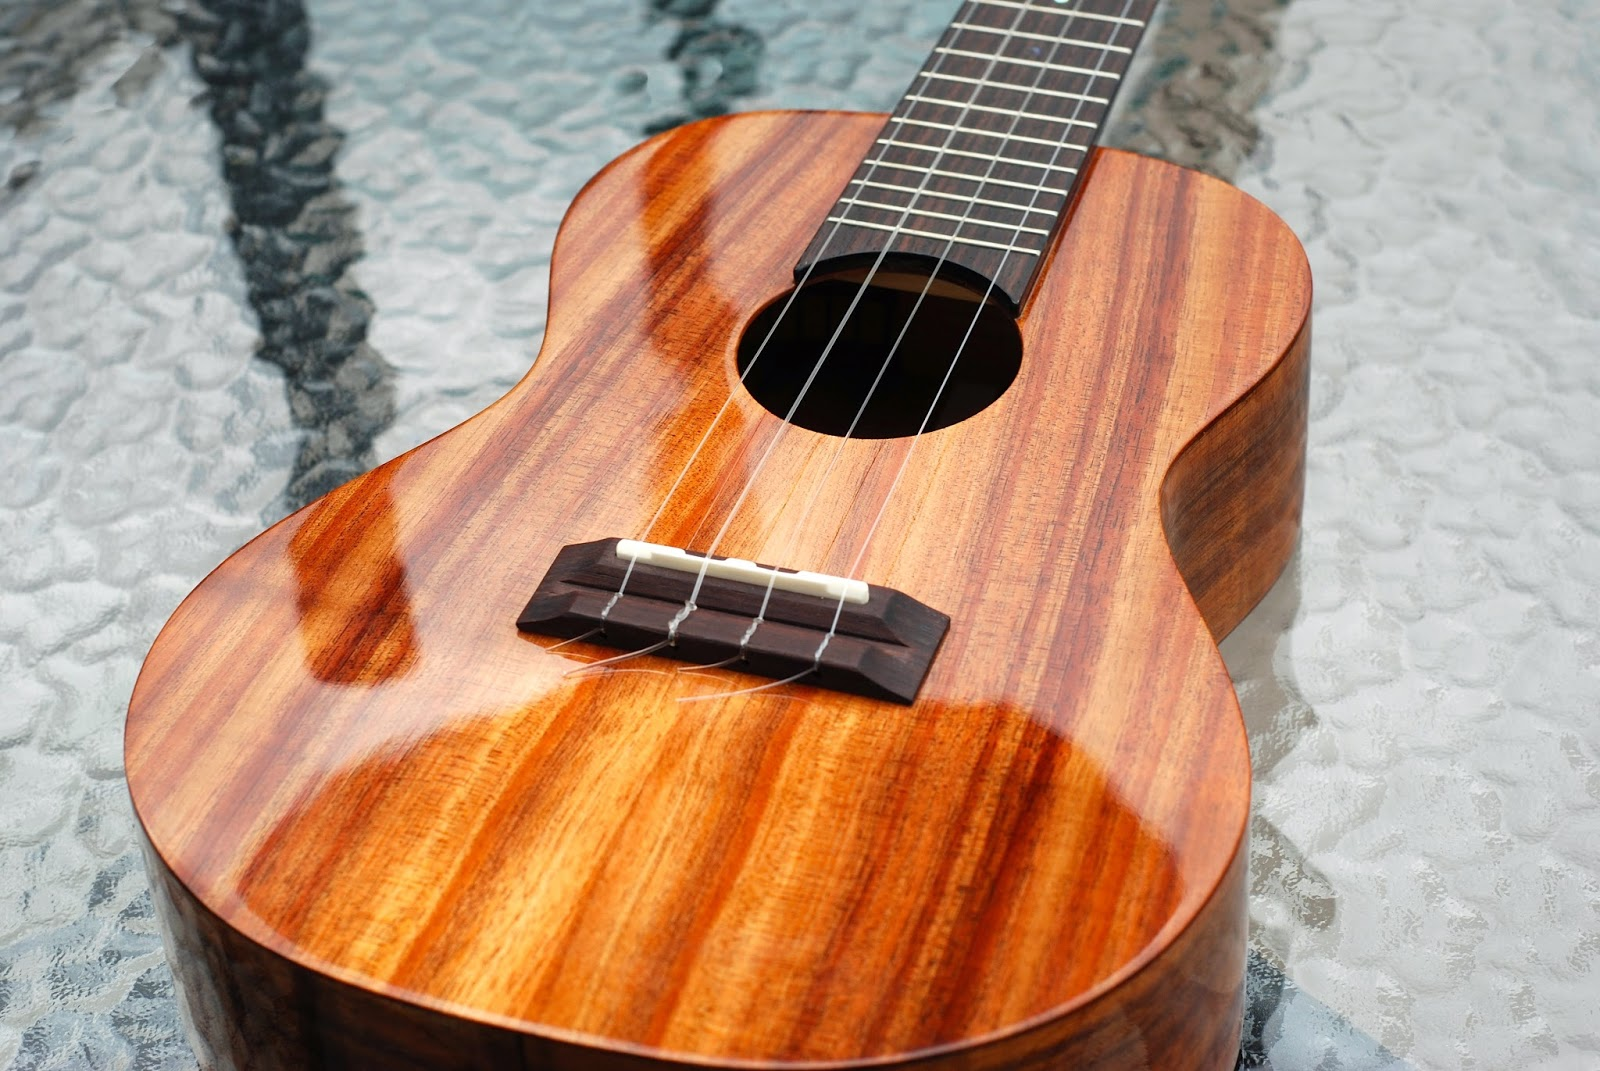 Big Island Concert ukulele in Koa Wood Gloss